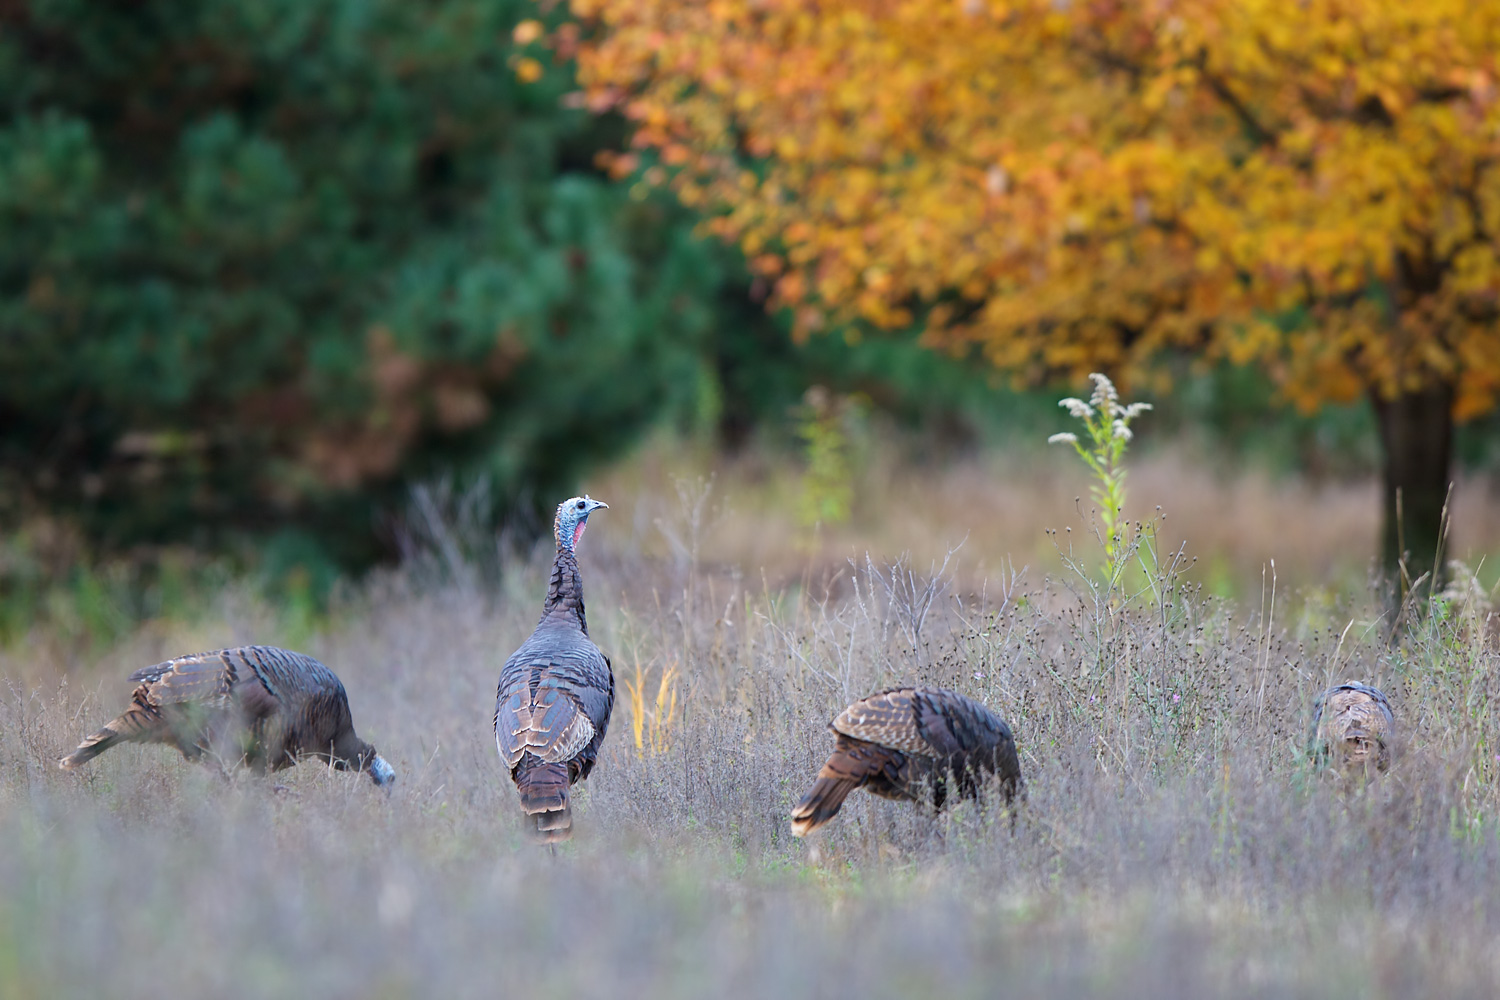 Someone say Thanksgiving? (Meleagris gallopavo) - Tamarack Nature Center, MN    Canon 5D Mark iii + Canon 300mm f2.8L IS